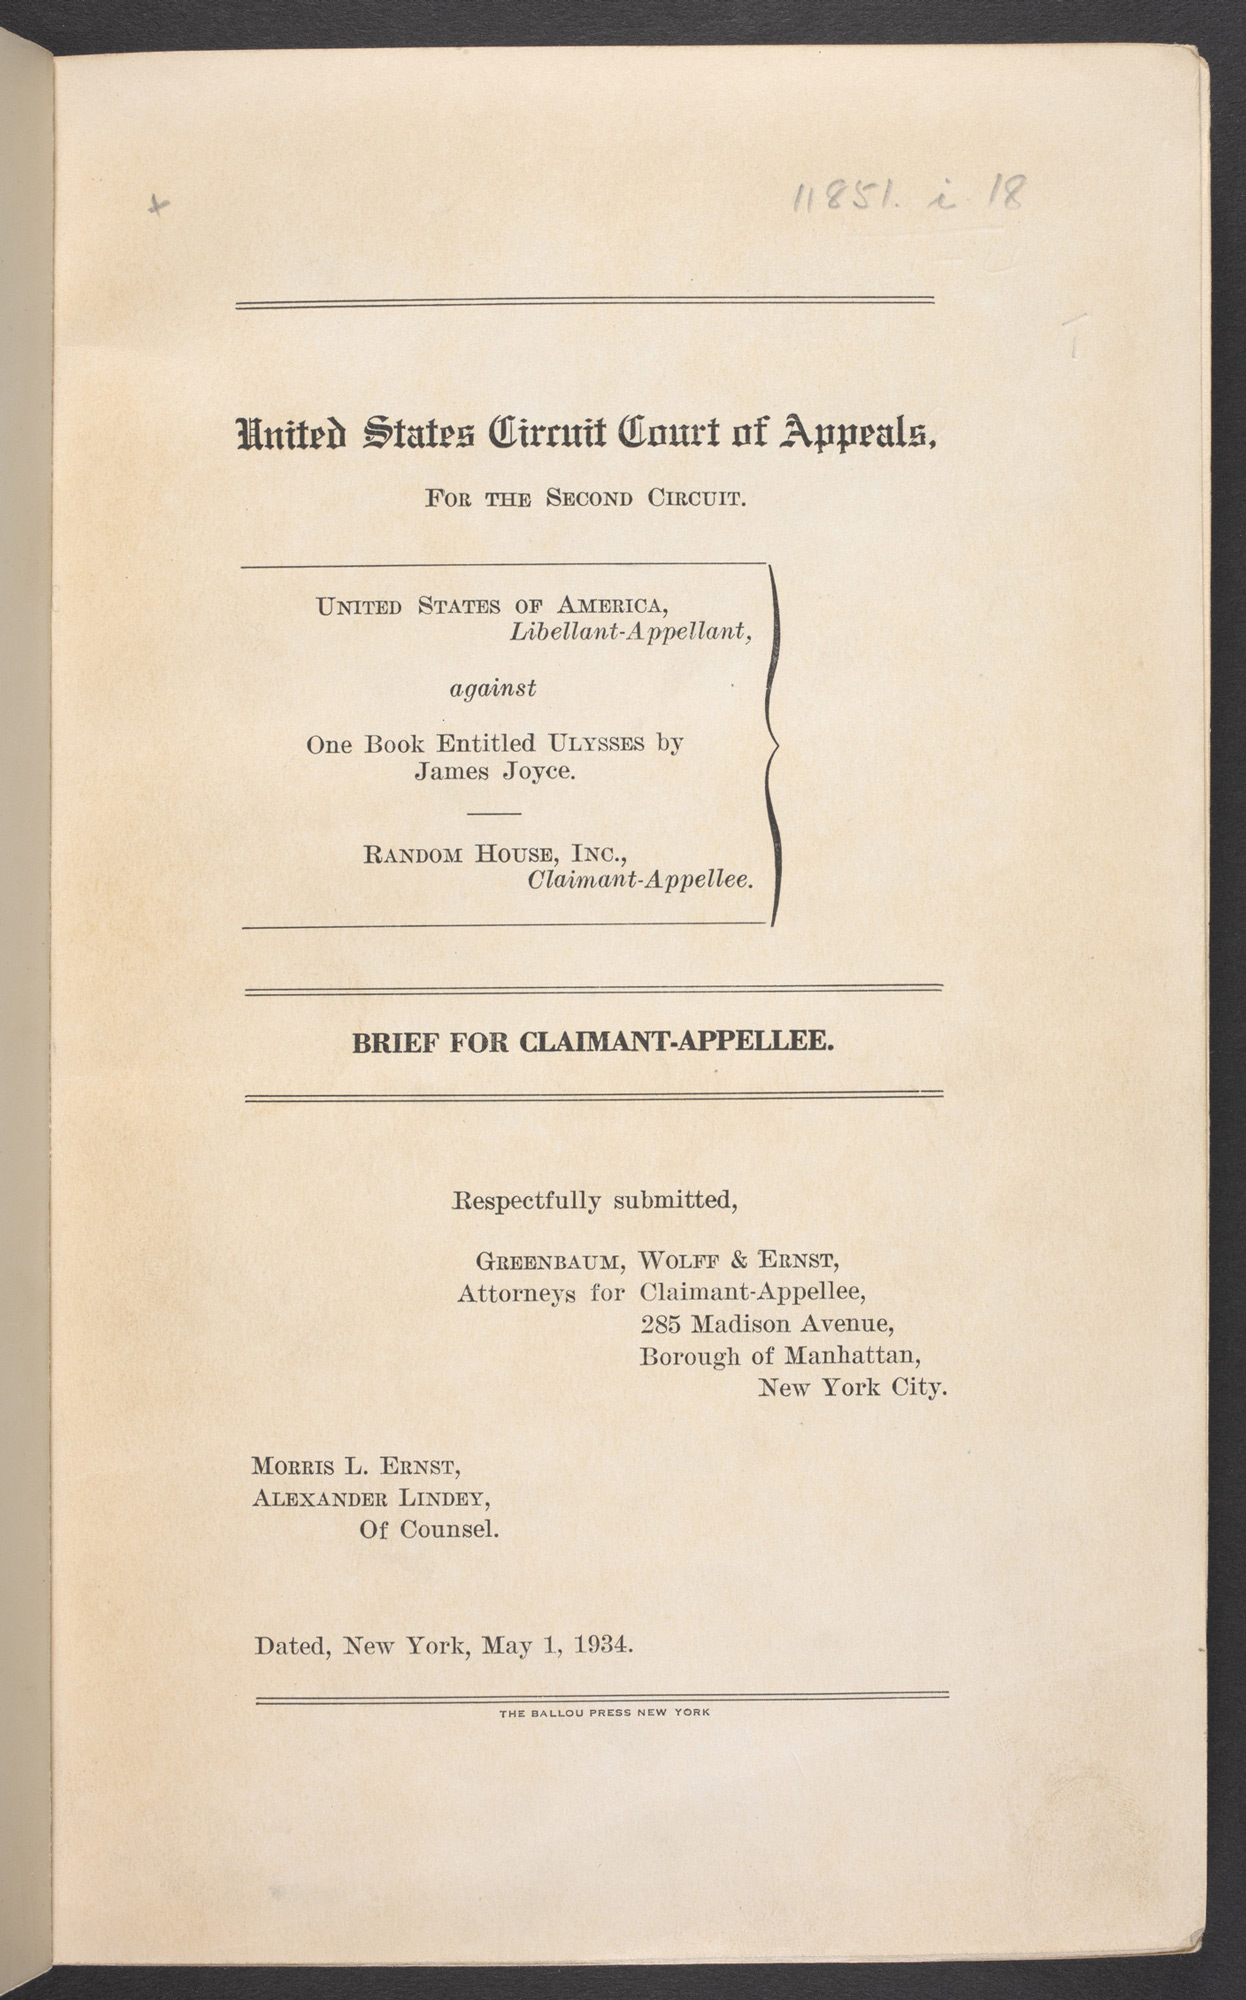 Legal notes prepared for United States v. One Book Entitled Ulysses, 1934